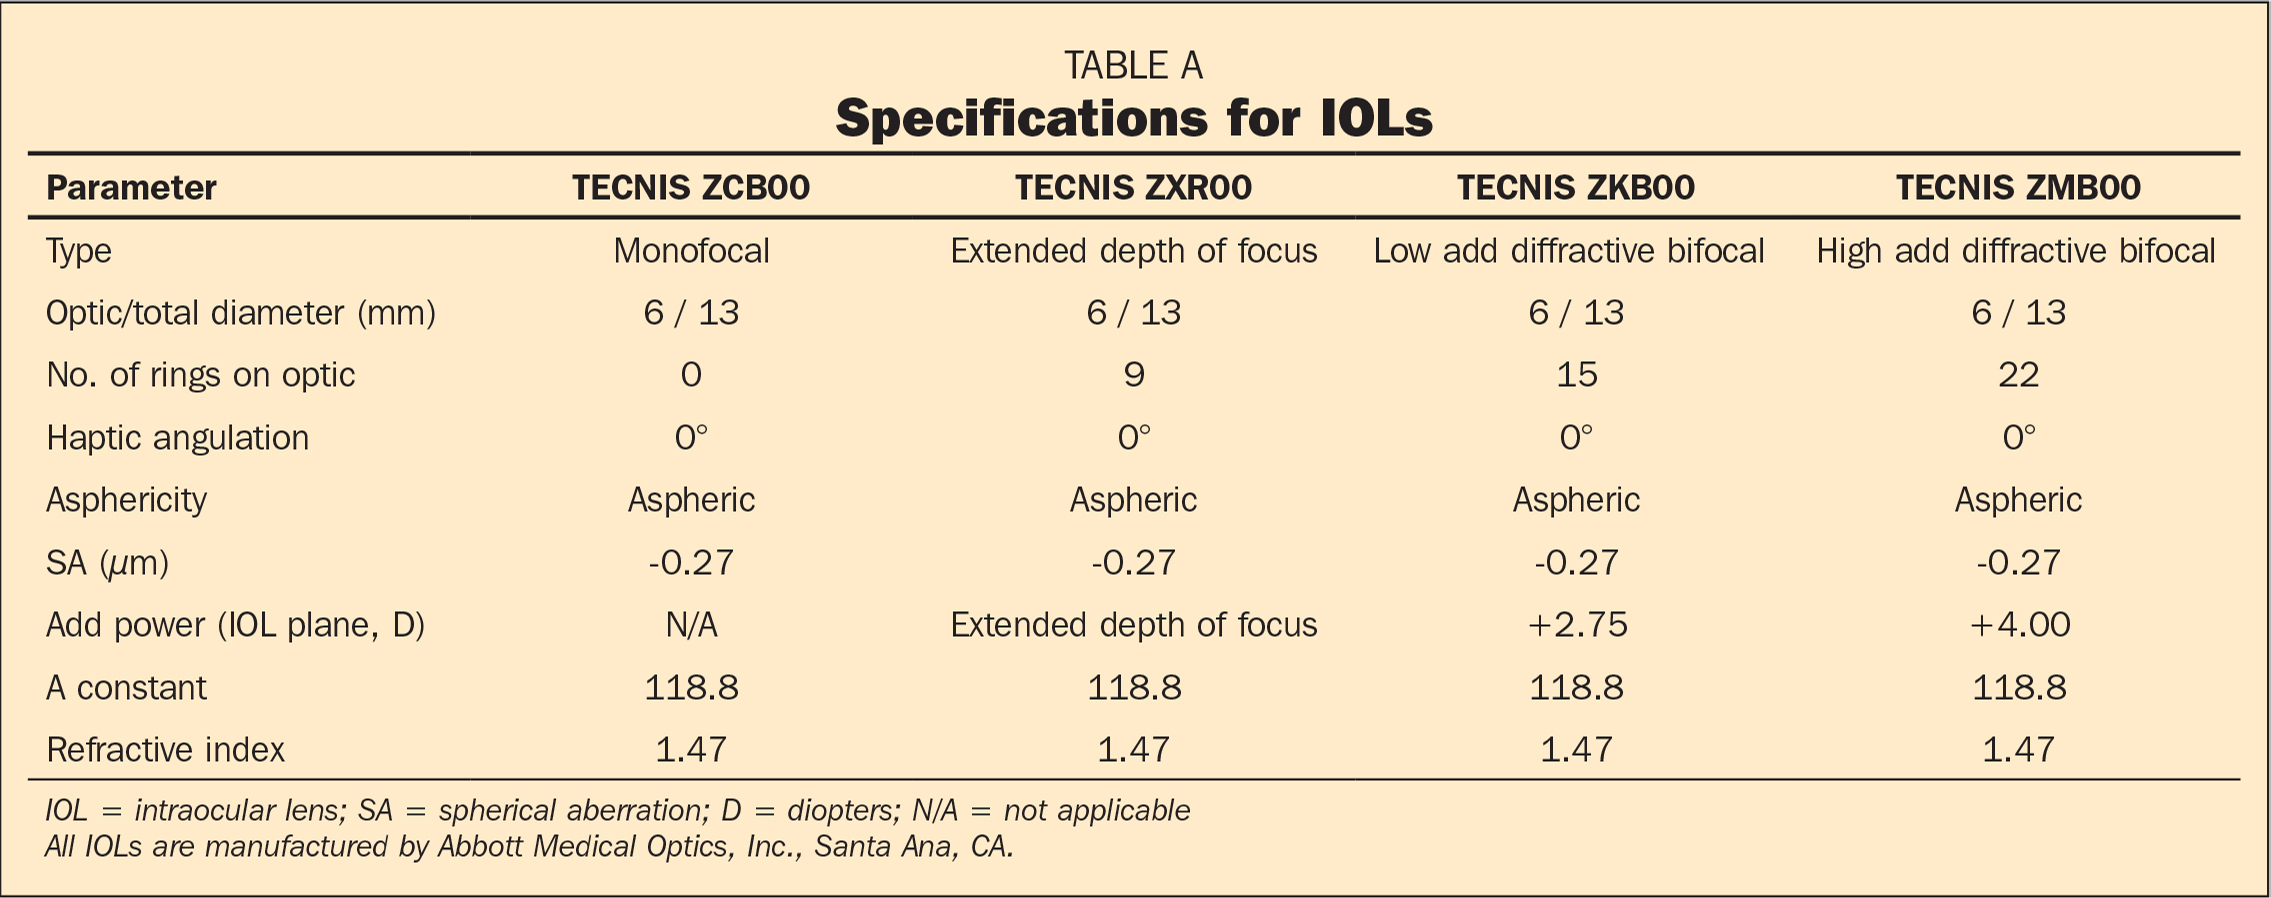 Specifications for IOLs